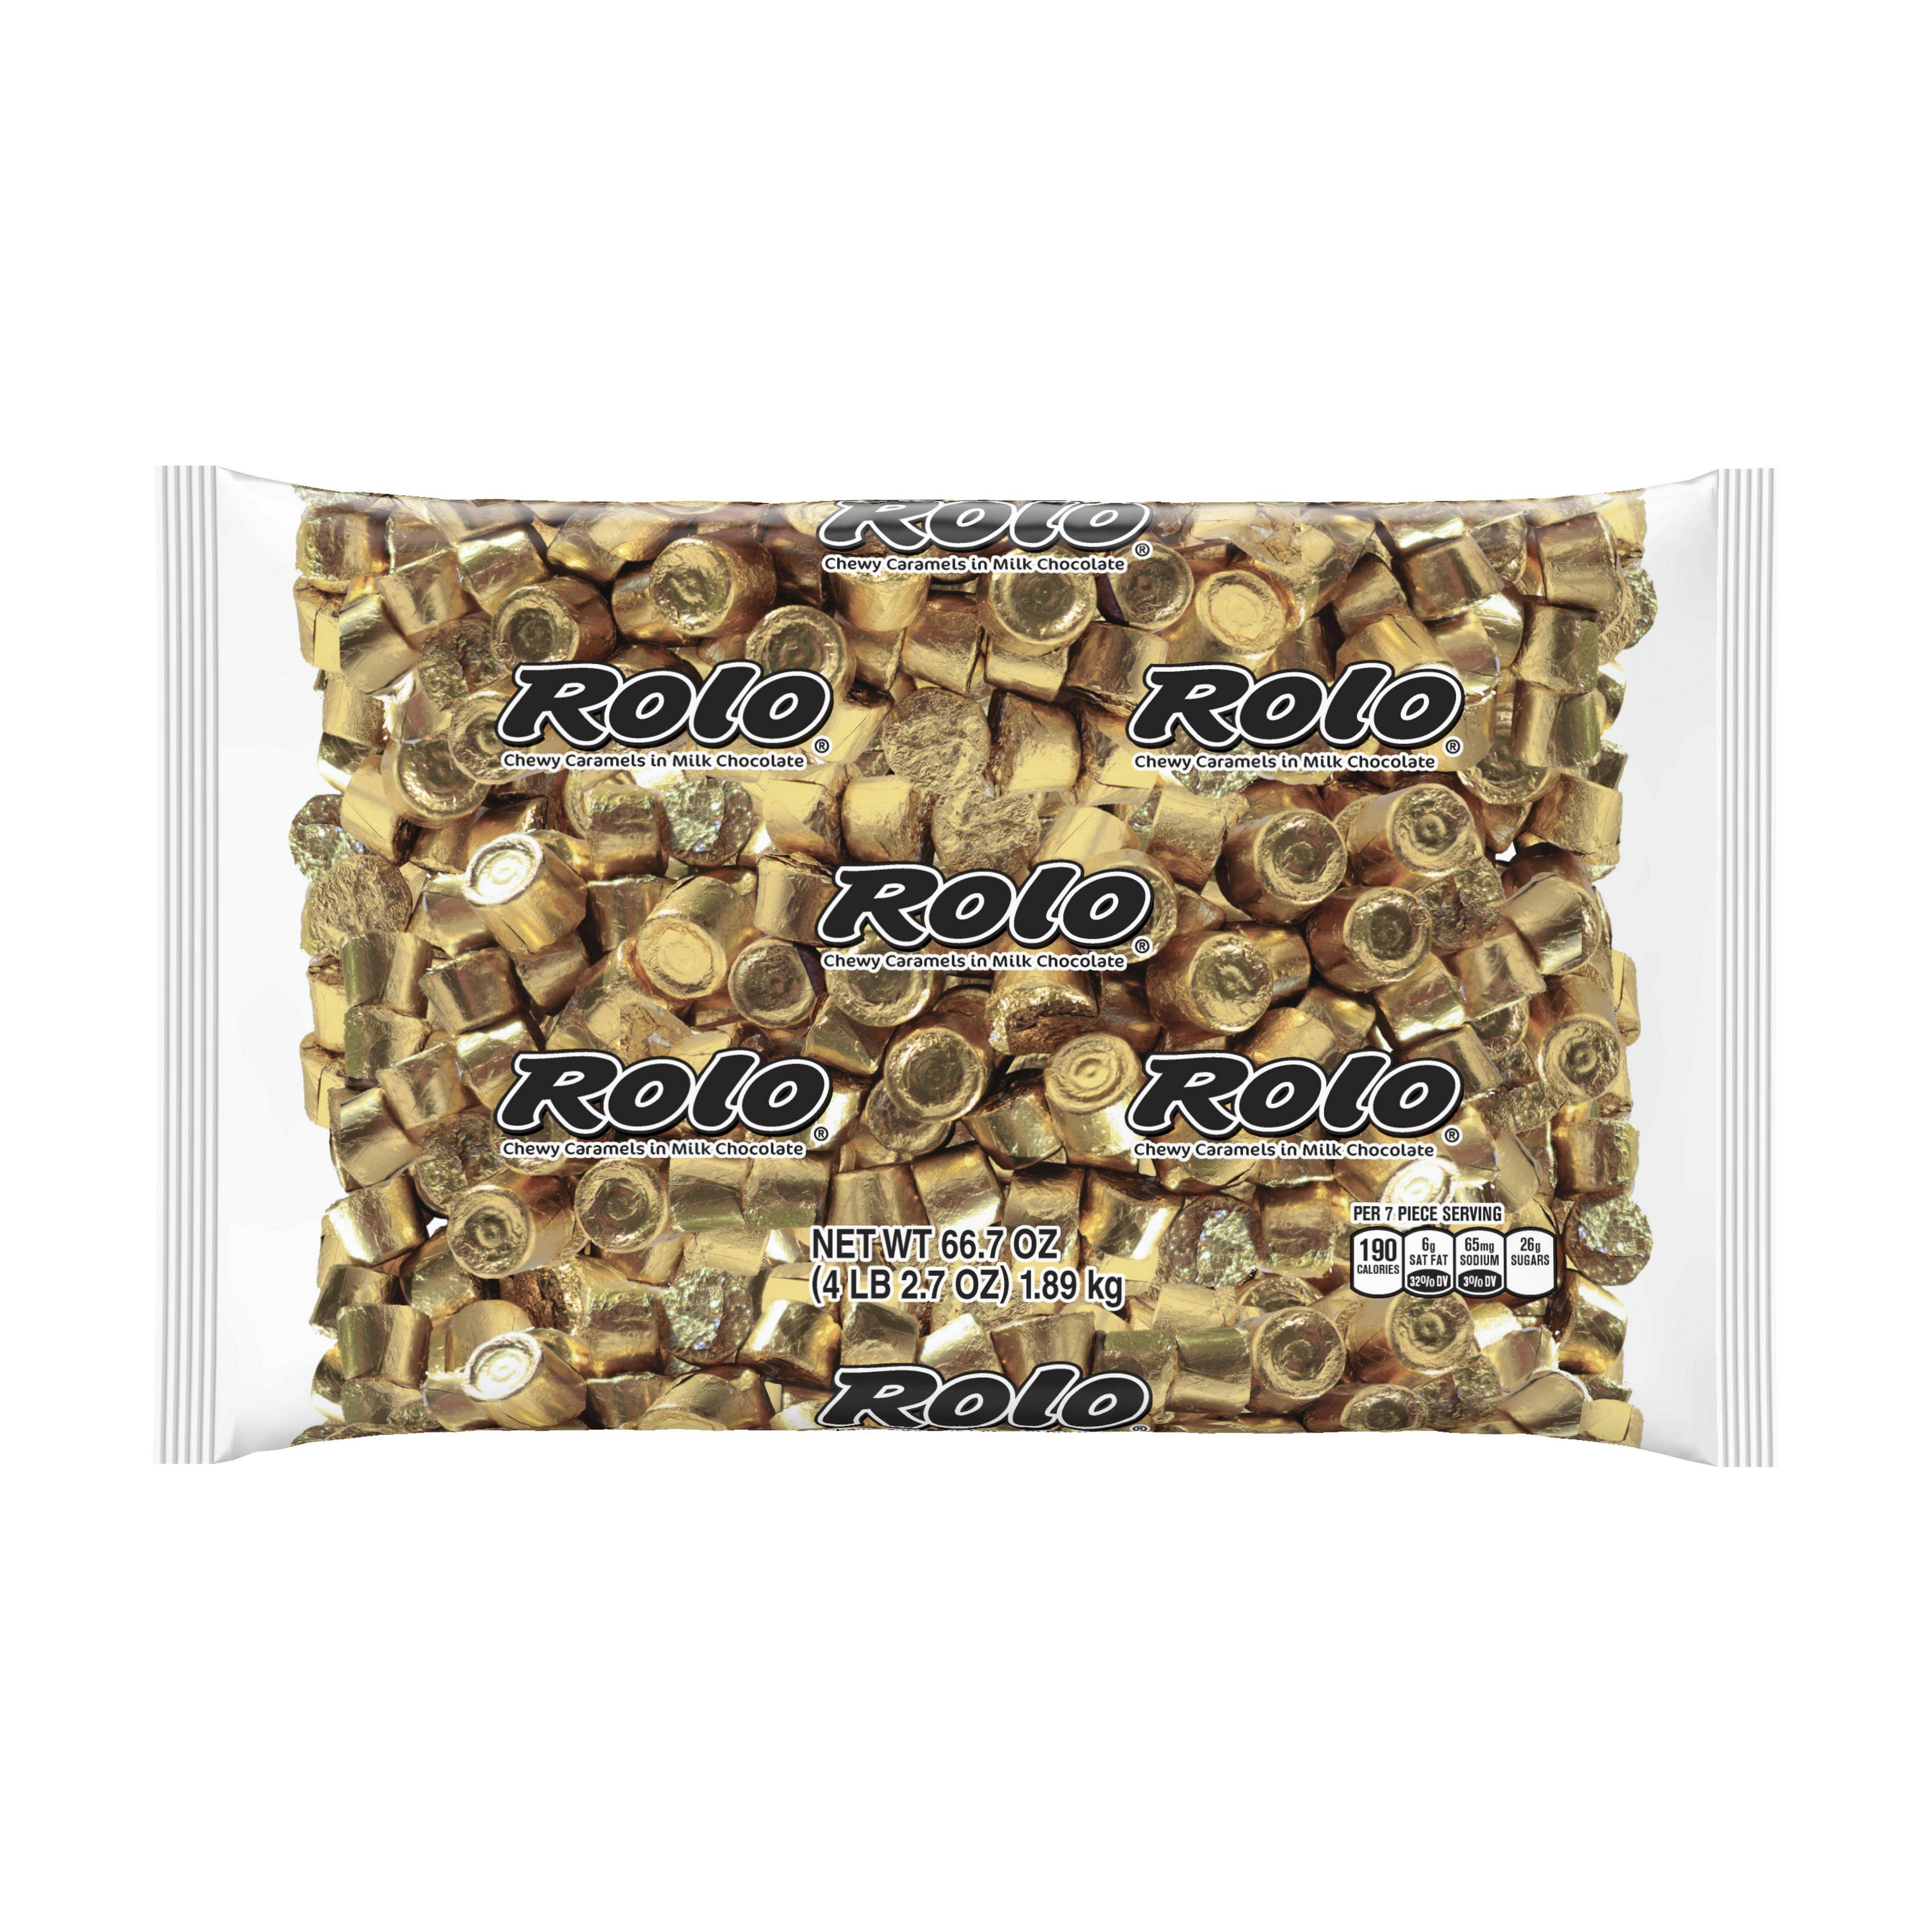 Rolo, Chewy Caramels Milk Chocolate Candy, Gold Foil, 66.7 Oz - Online Only